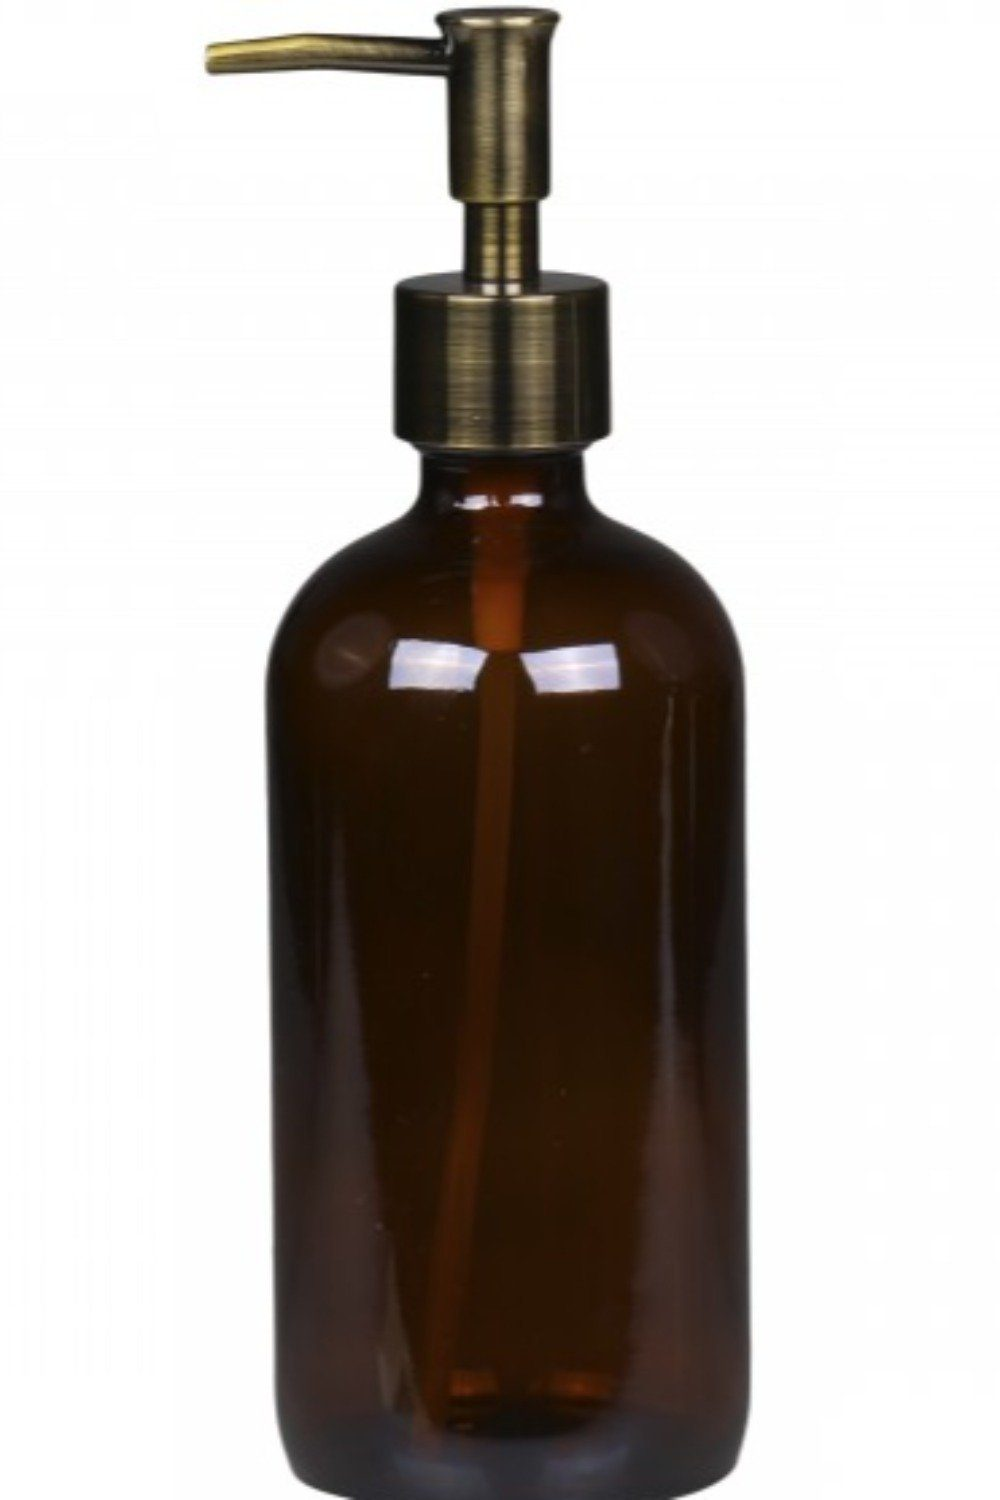 Brass and Glass Bottle Bath & Body Blume